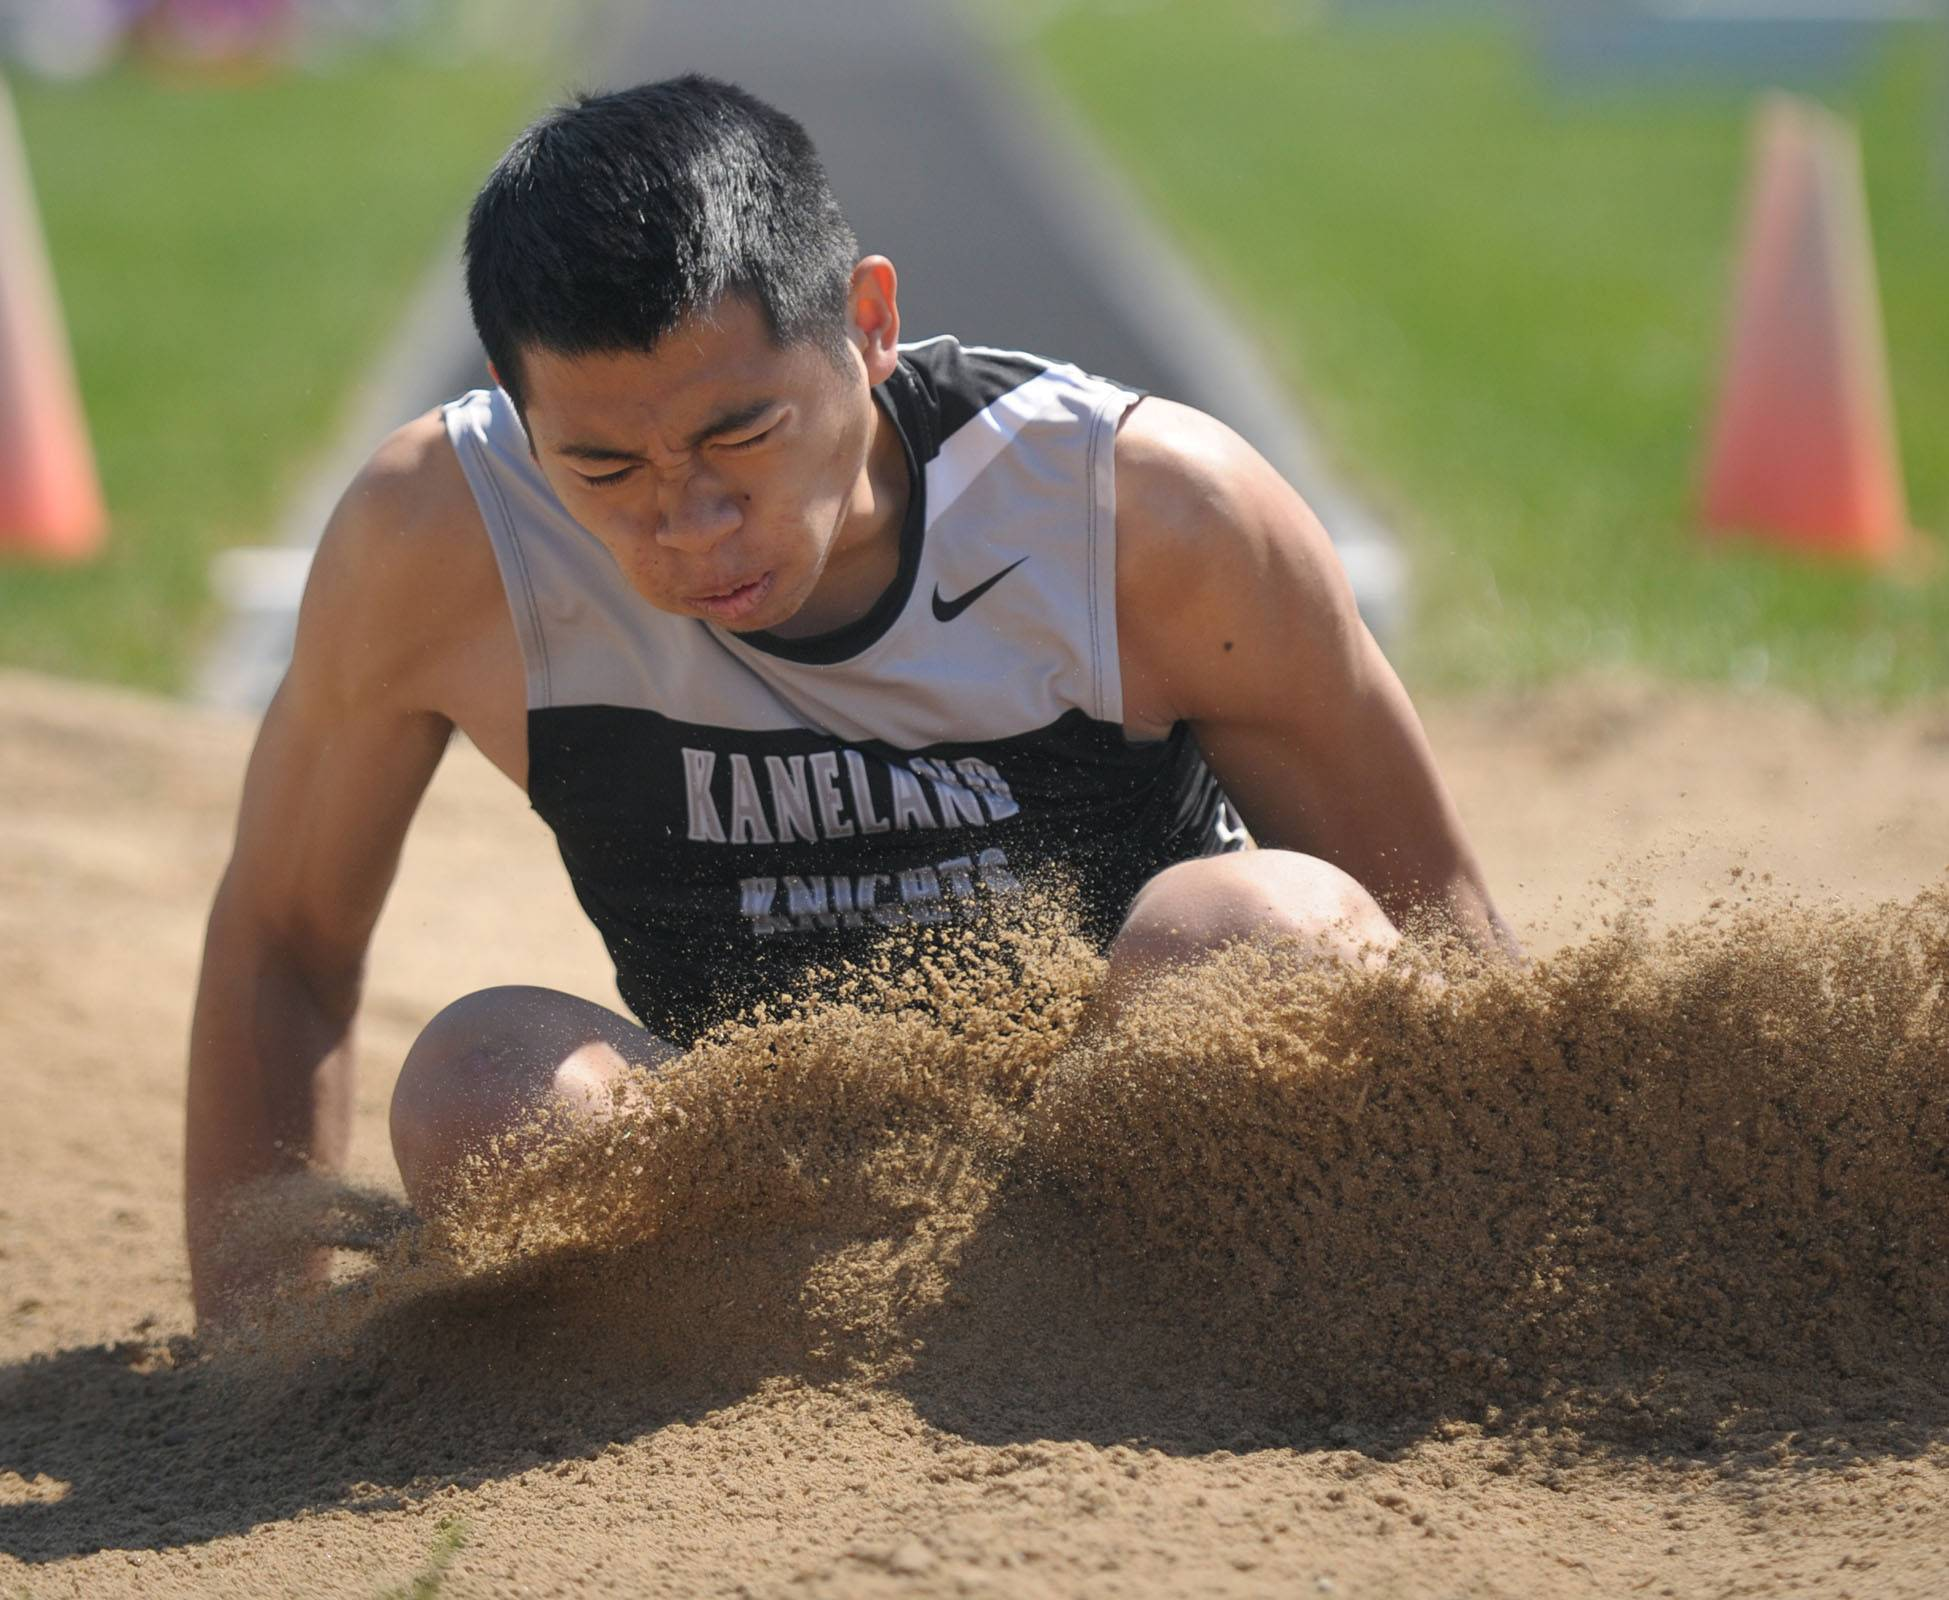 Kaneland's Ben Barnes lands in the long jump finals at Kaneland's Peterson Prep Invitational on Saturday, April 26.